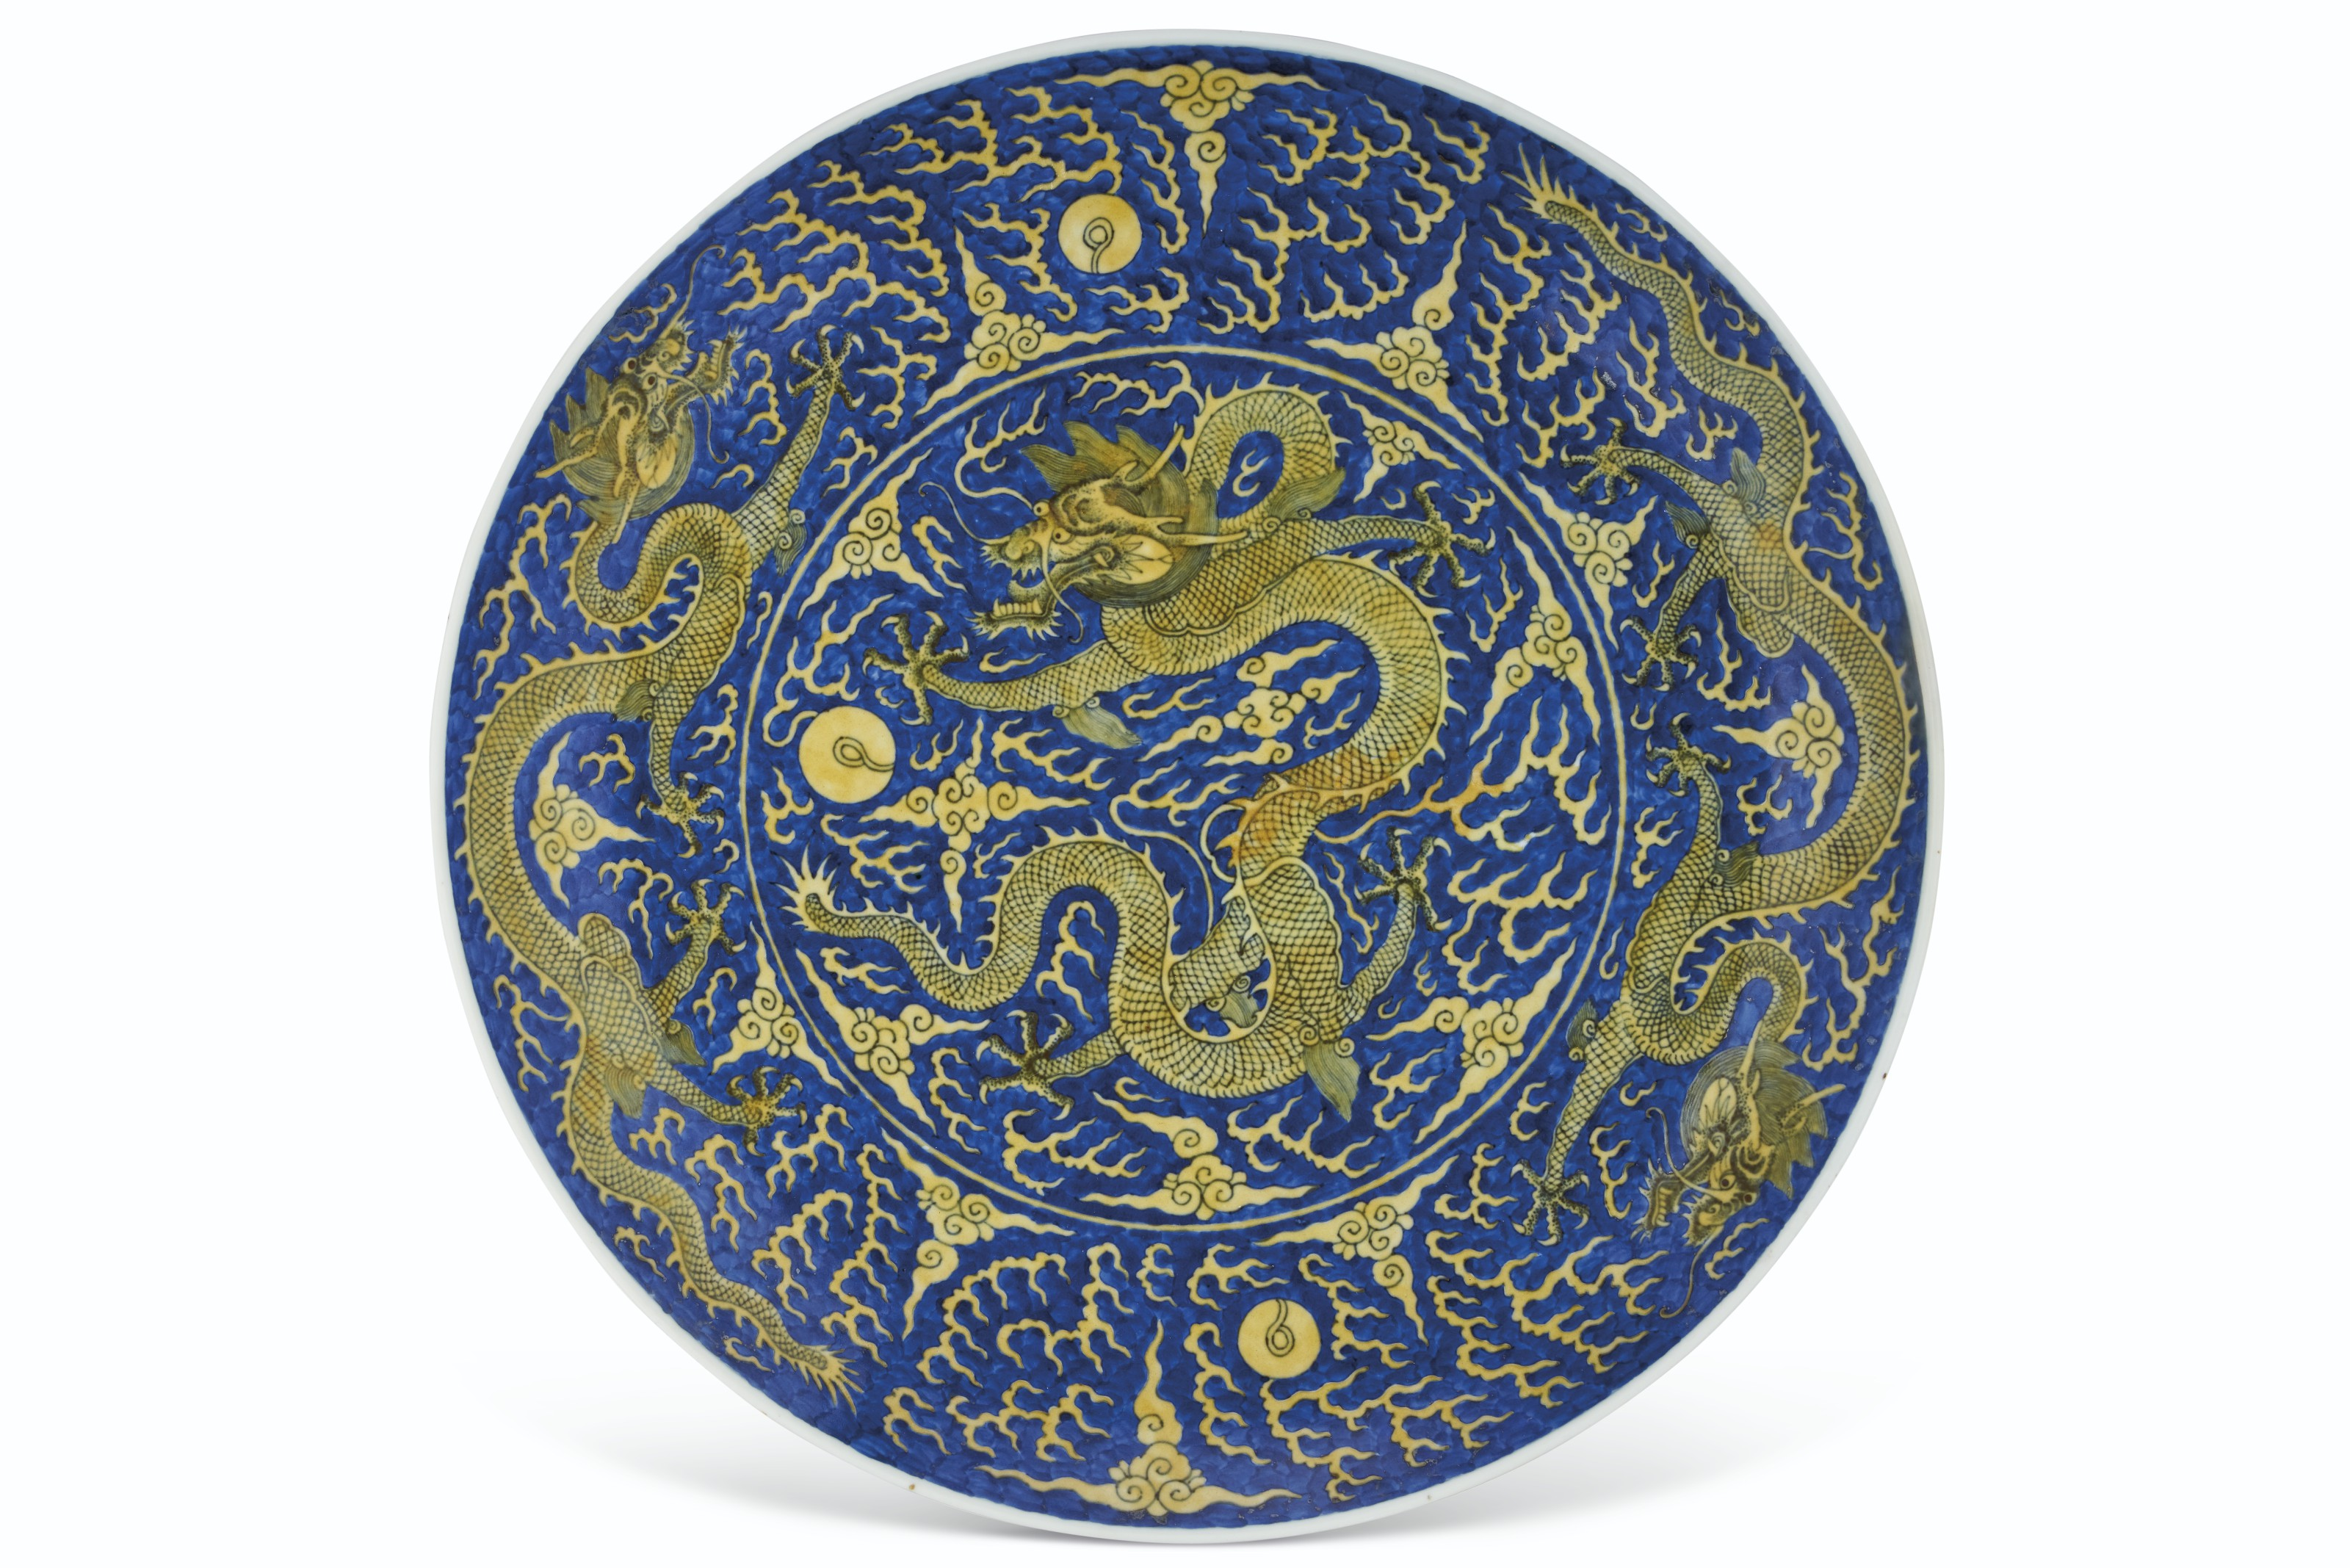 A LARGE YELLOW ENAMEL AND UNDERGLAZE-BLUE-GROUND 'DRAGON' DISH